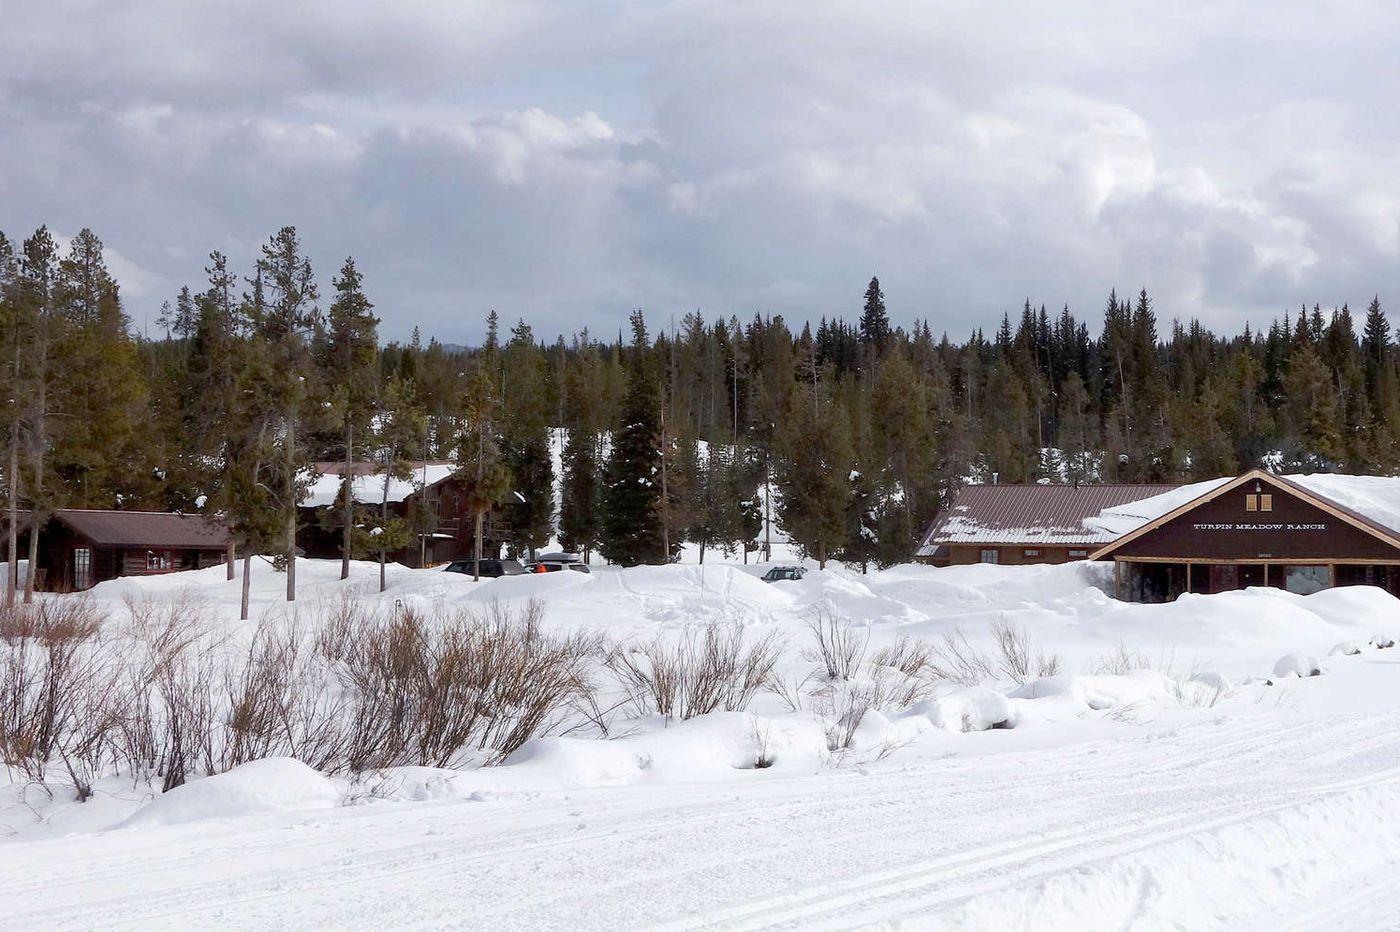 Nordic skiing trails at Jackson Hole wind through pine forest and open meadows